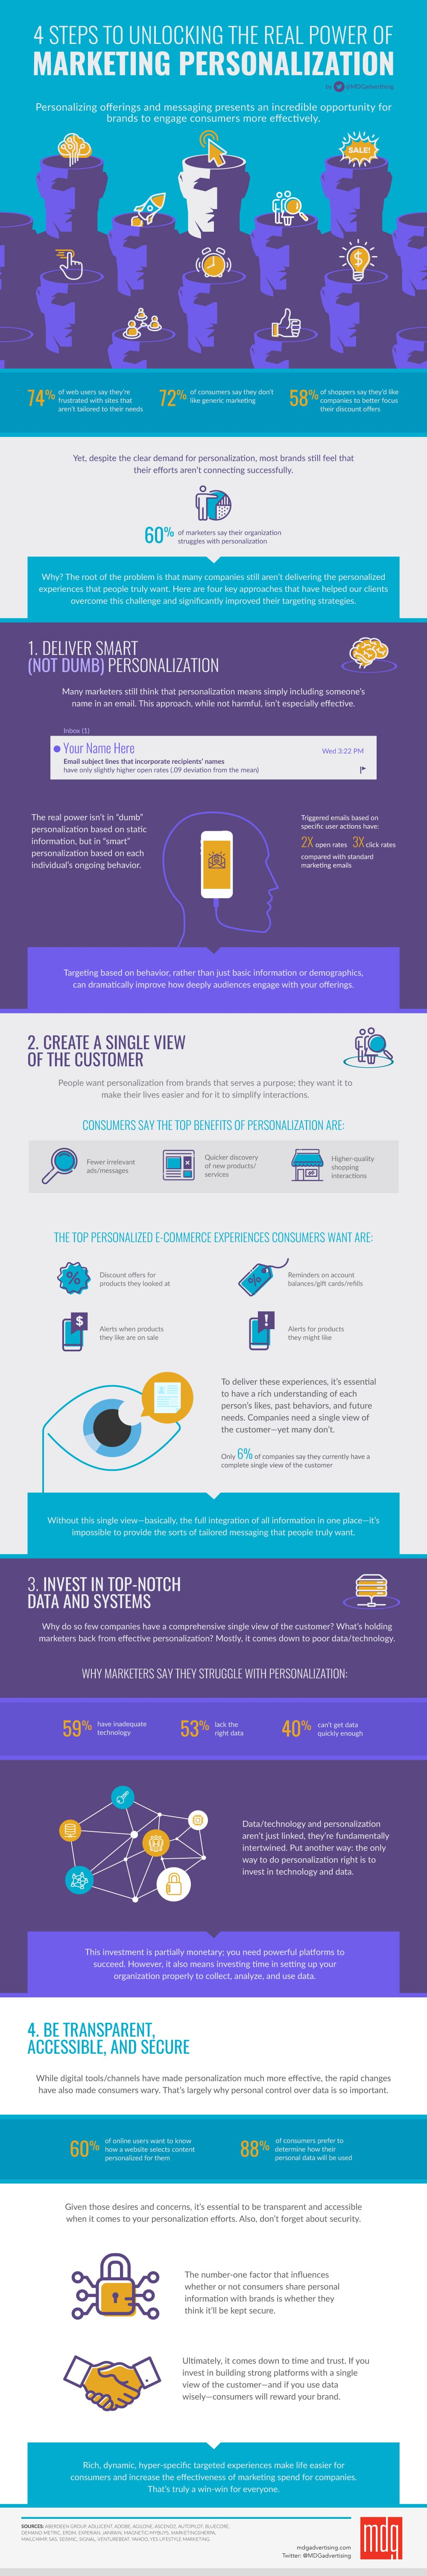 Marketing Personalization: 4 Steps To Unlocking Its Power [Infographic]